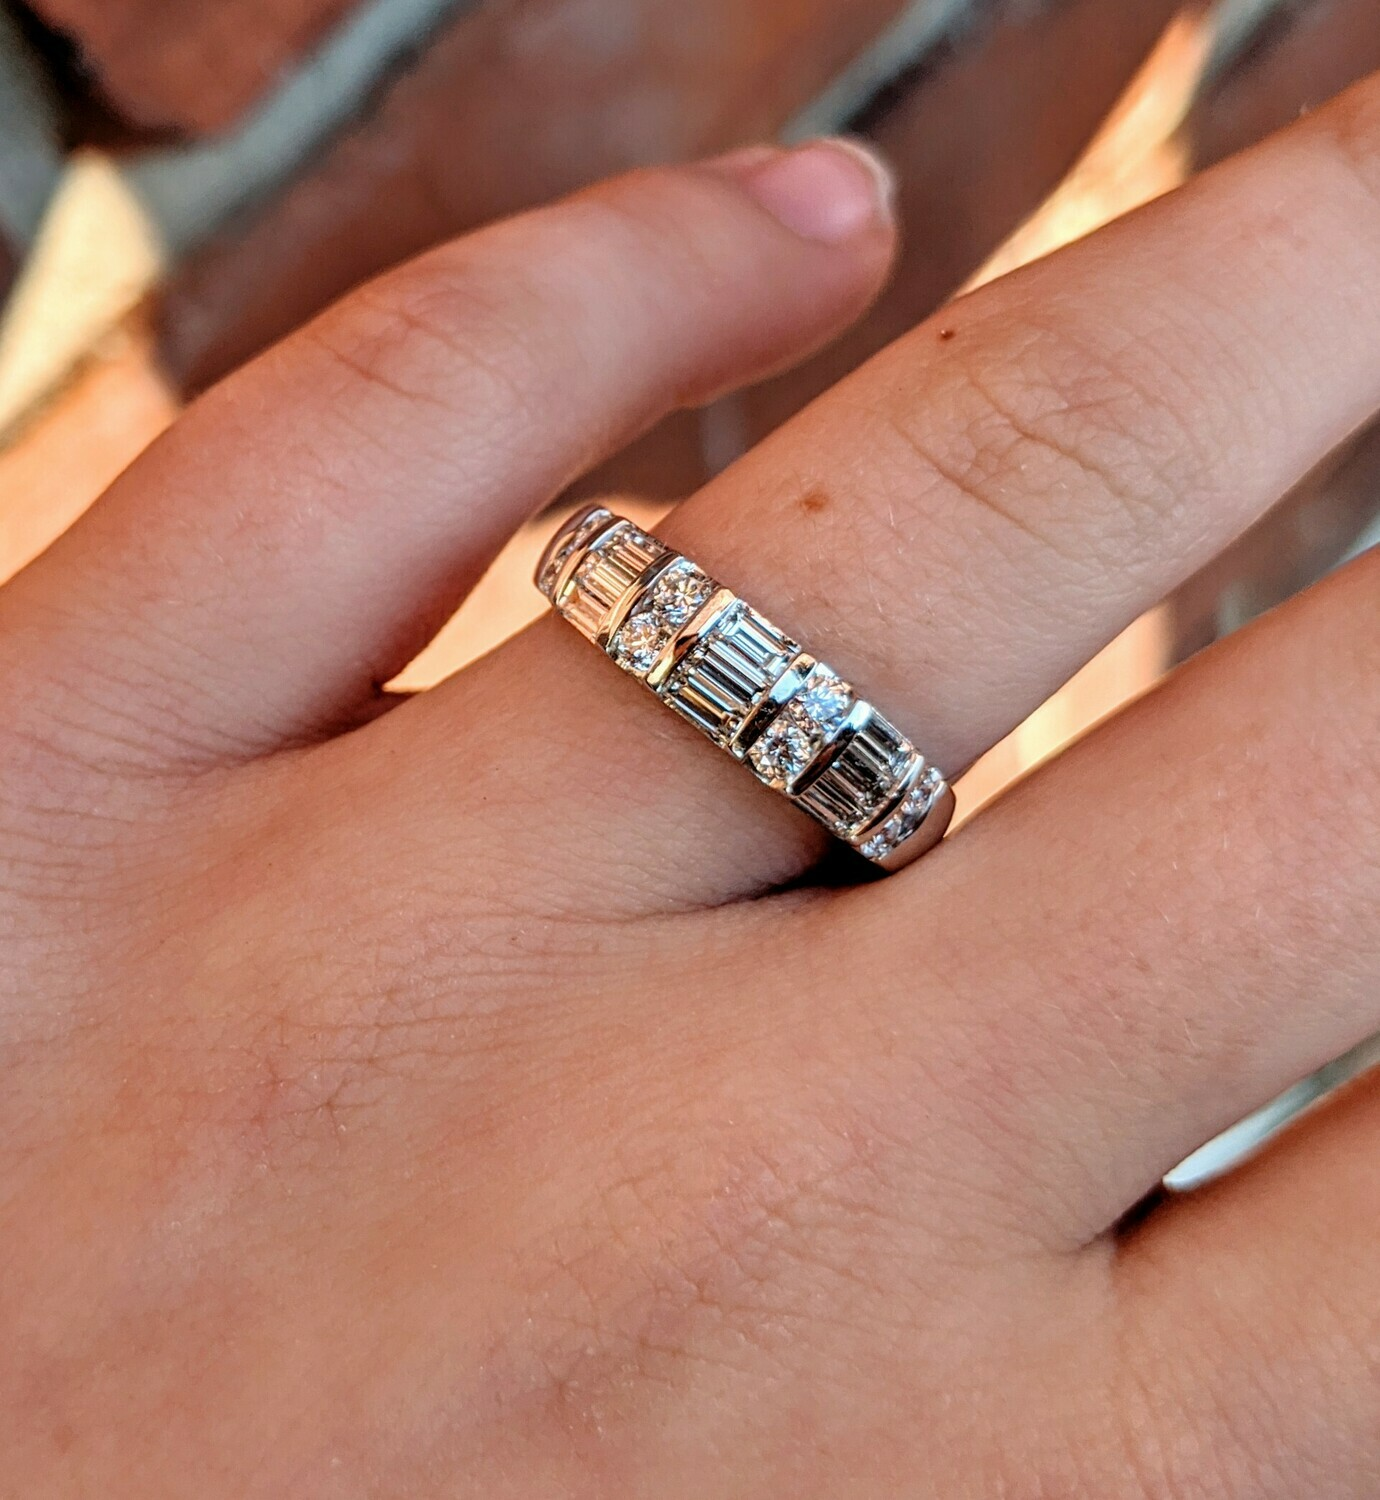 1 Carat Round and Baguette Diamond Band from Shane Co